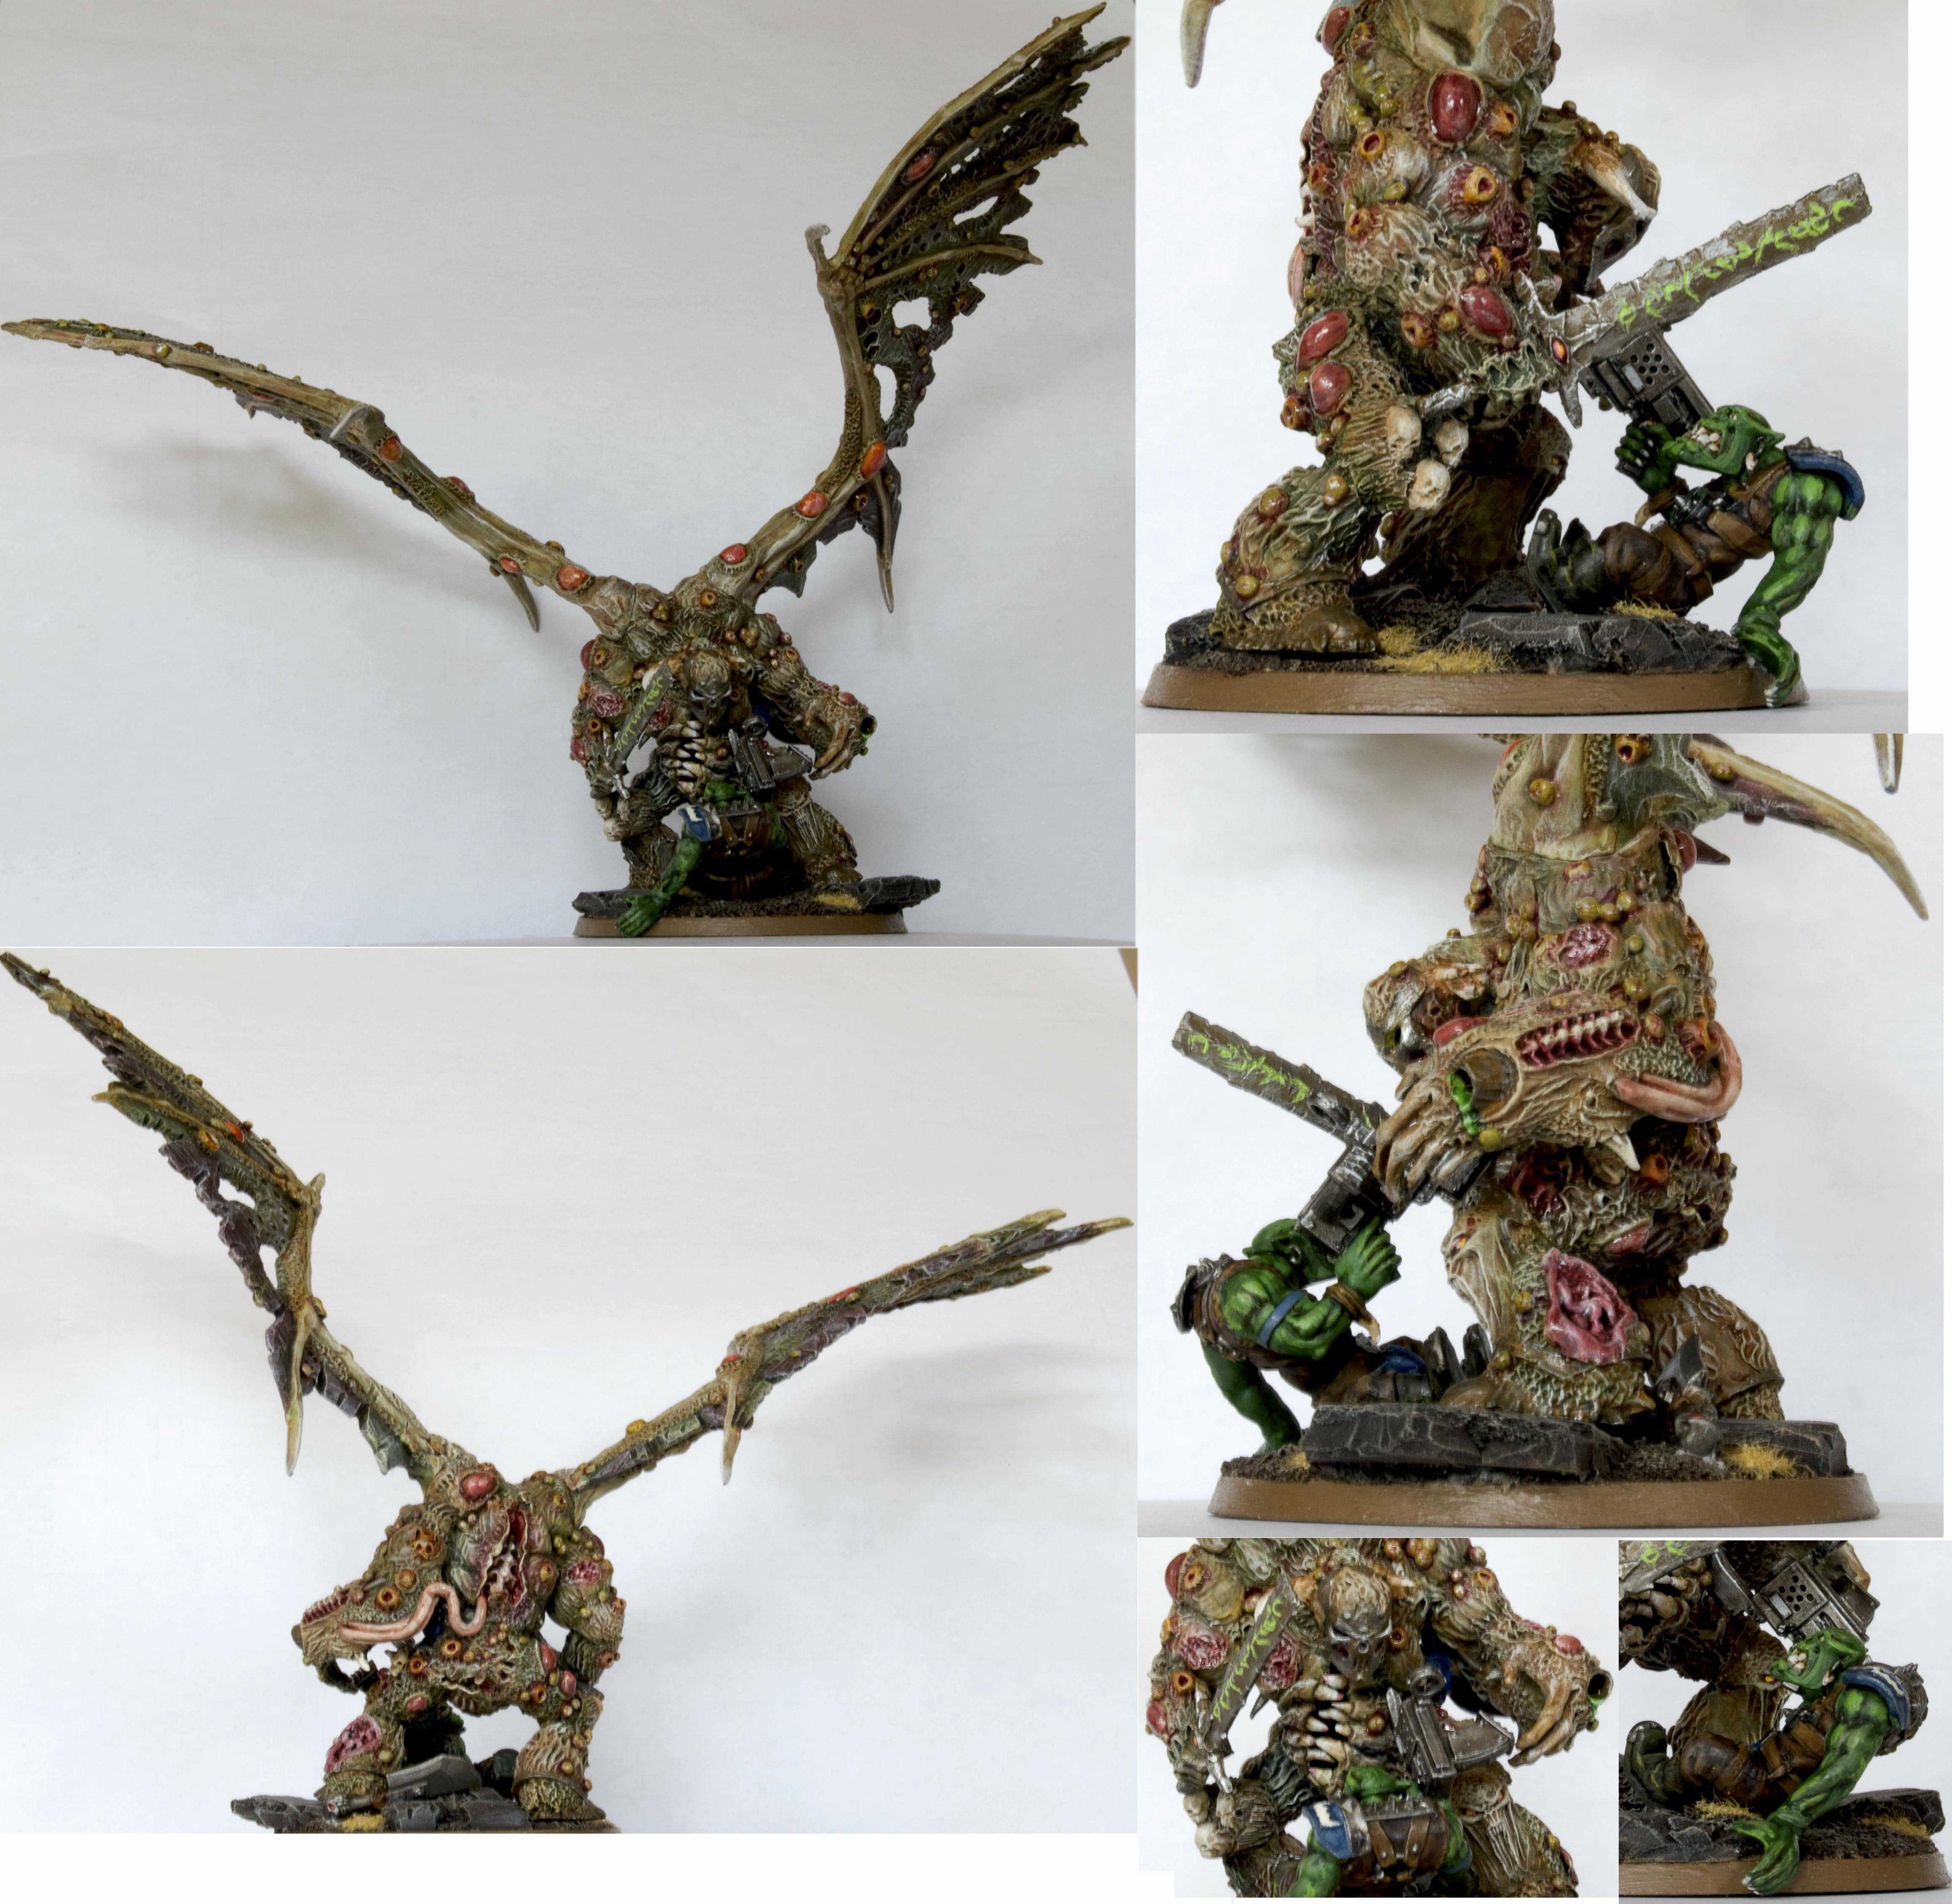 Chaos, Chaos Space Marines, Conversion, Daemon Prince, Daemon Prince. Death Guard, Daemons, Death Guard, Duel, Nurgle, Plague Marines, Prince, Winged